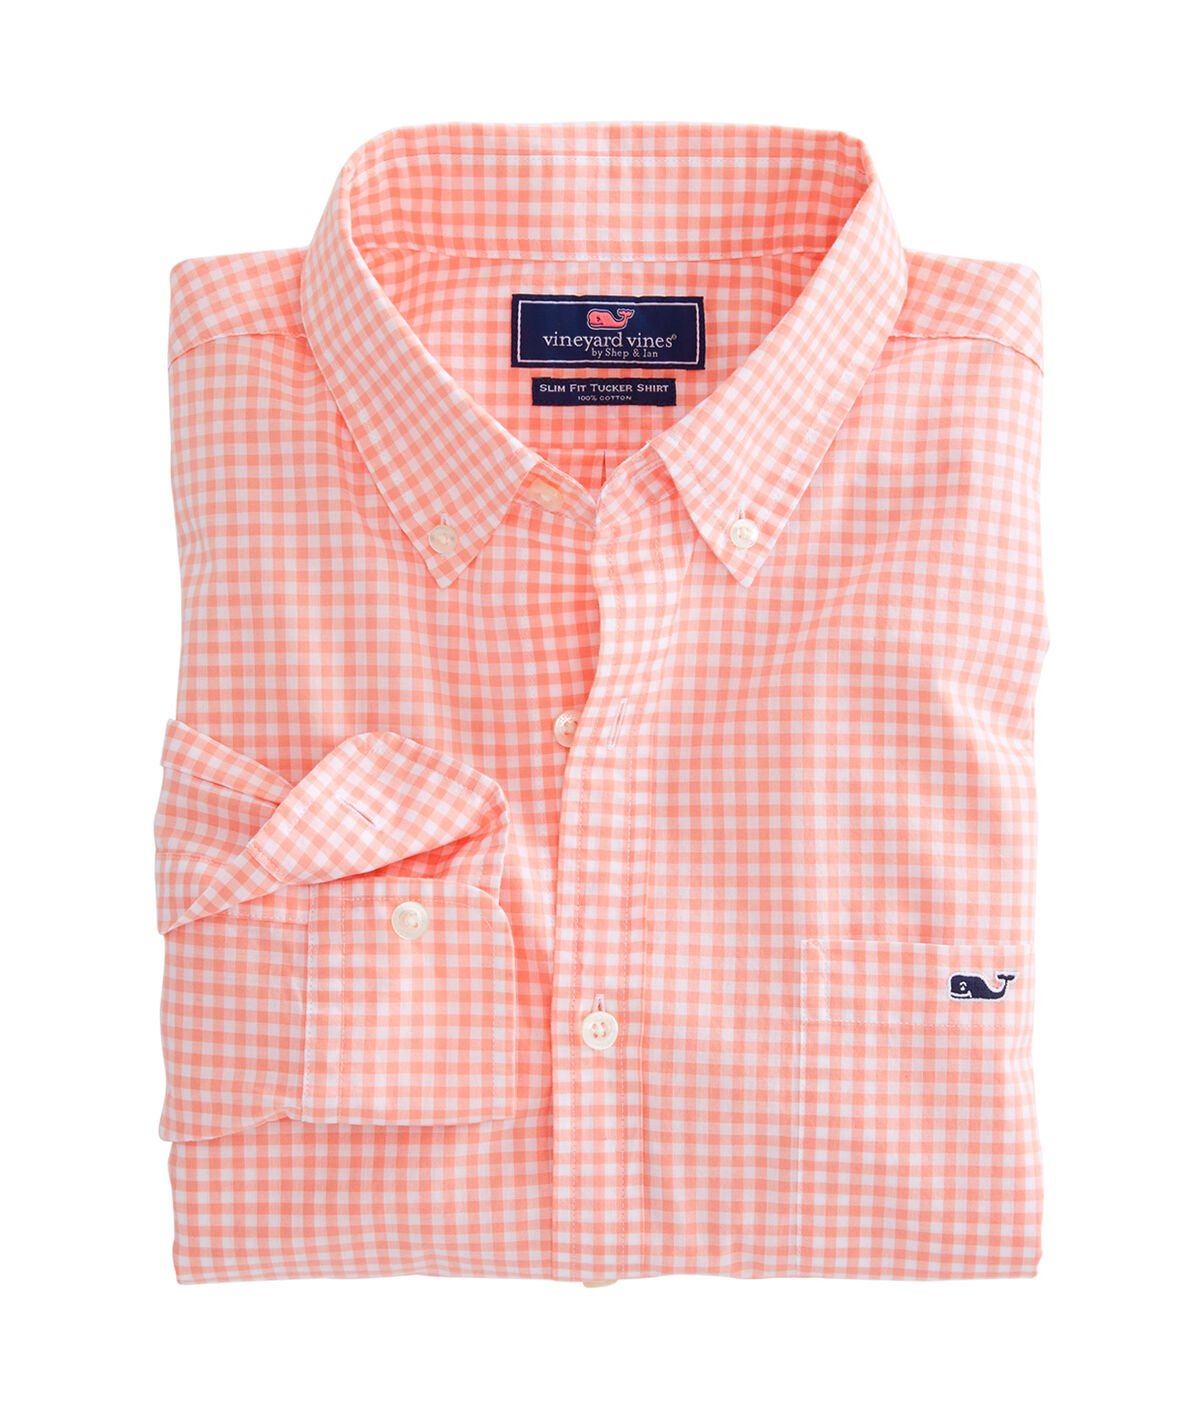 shop preppy clothing u0026 clothes on sale at vineyard vines